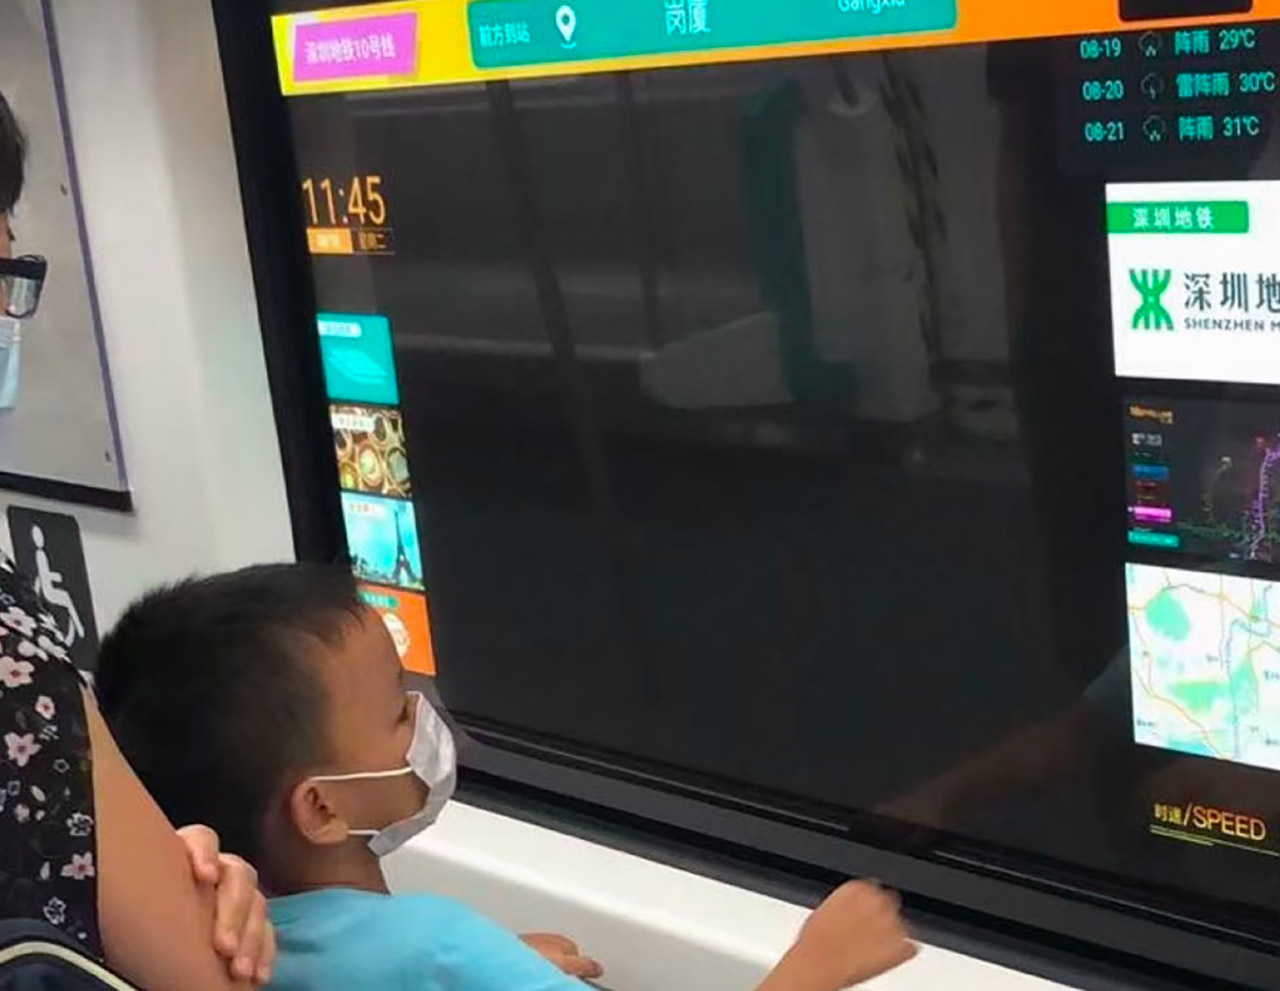 LG Transparent OLED Subway China